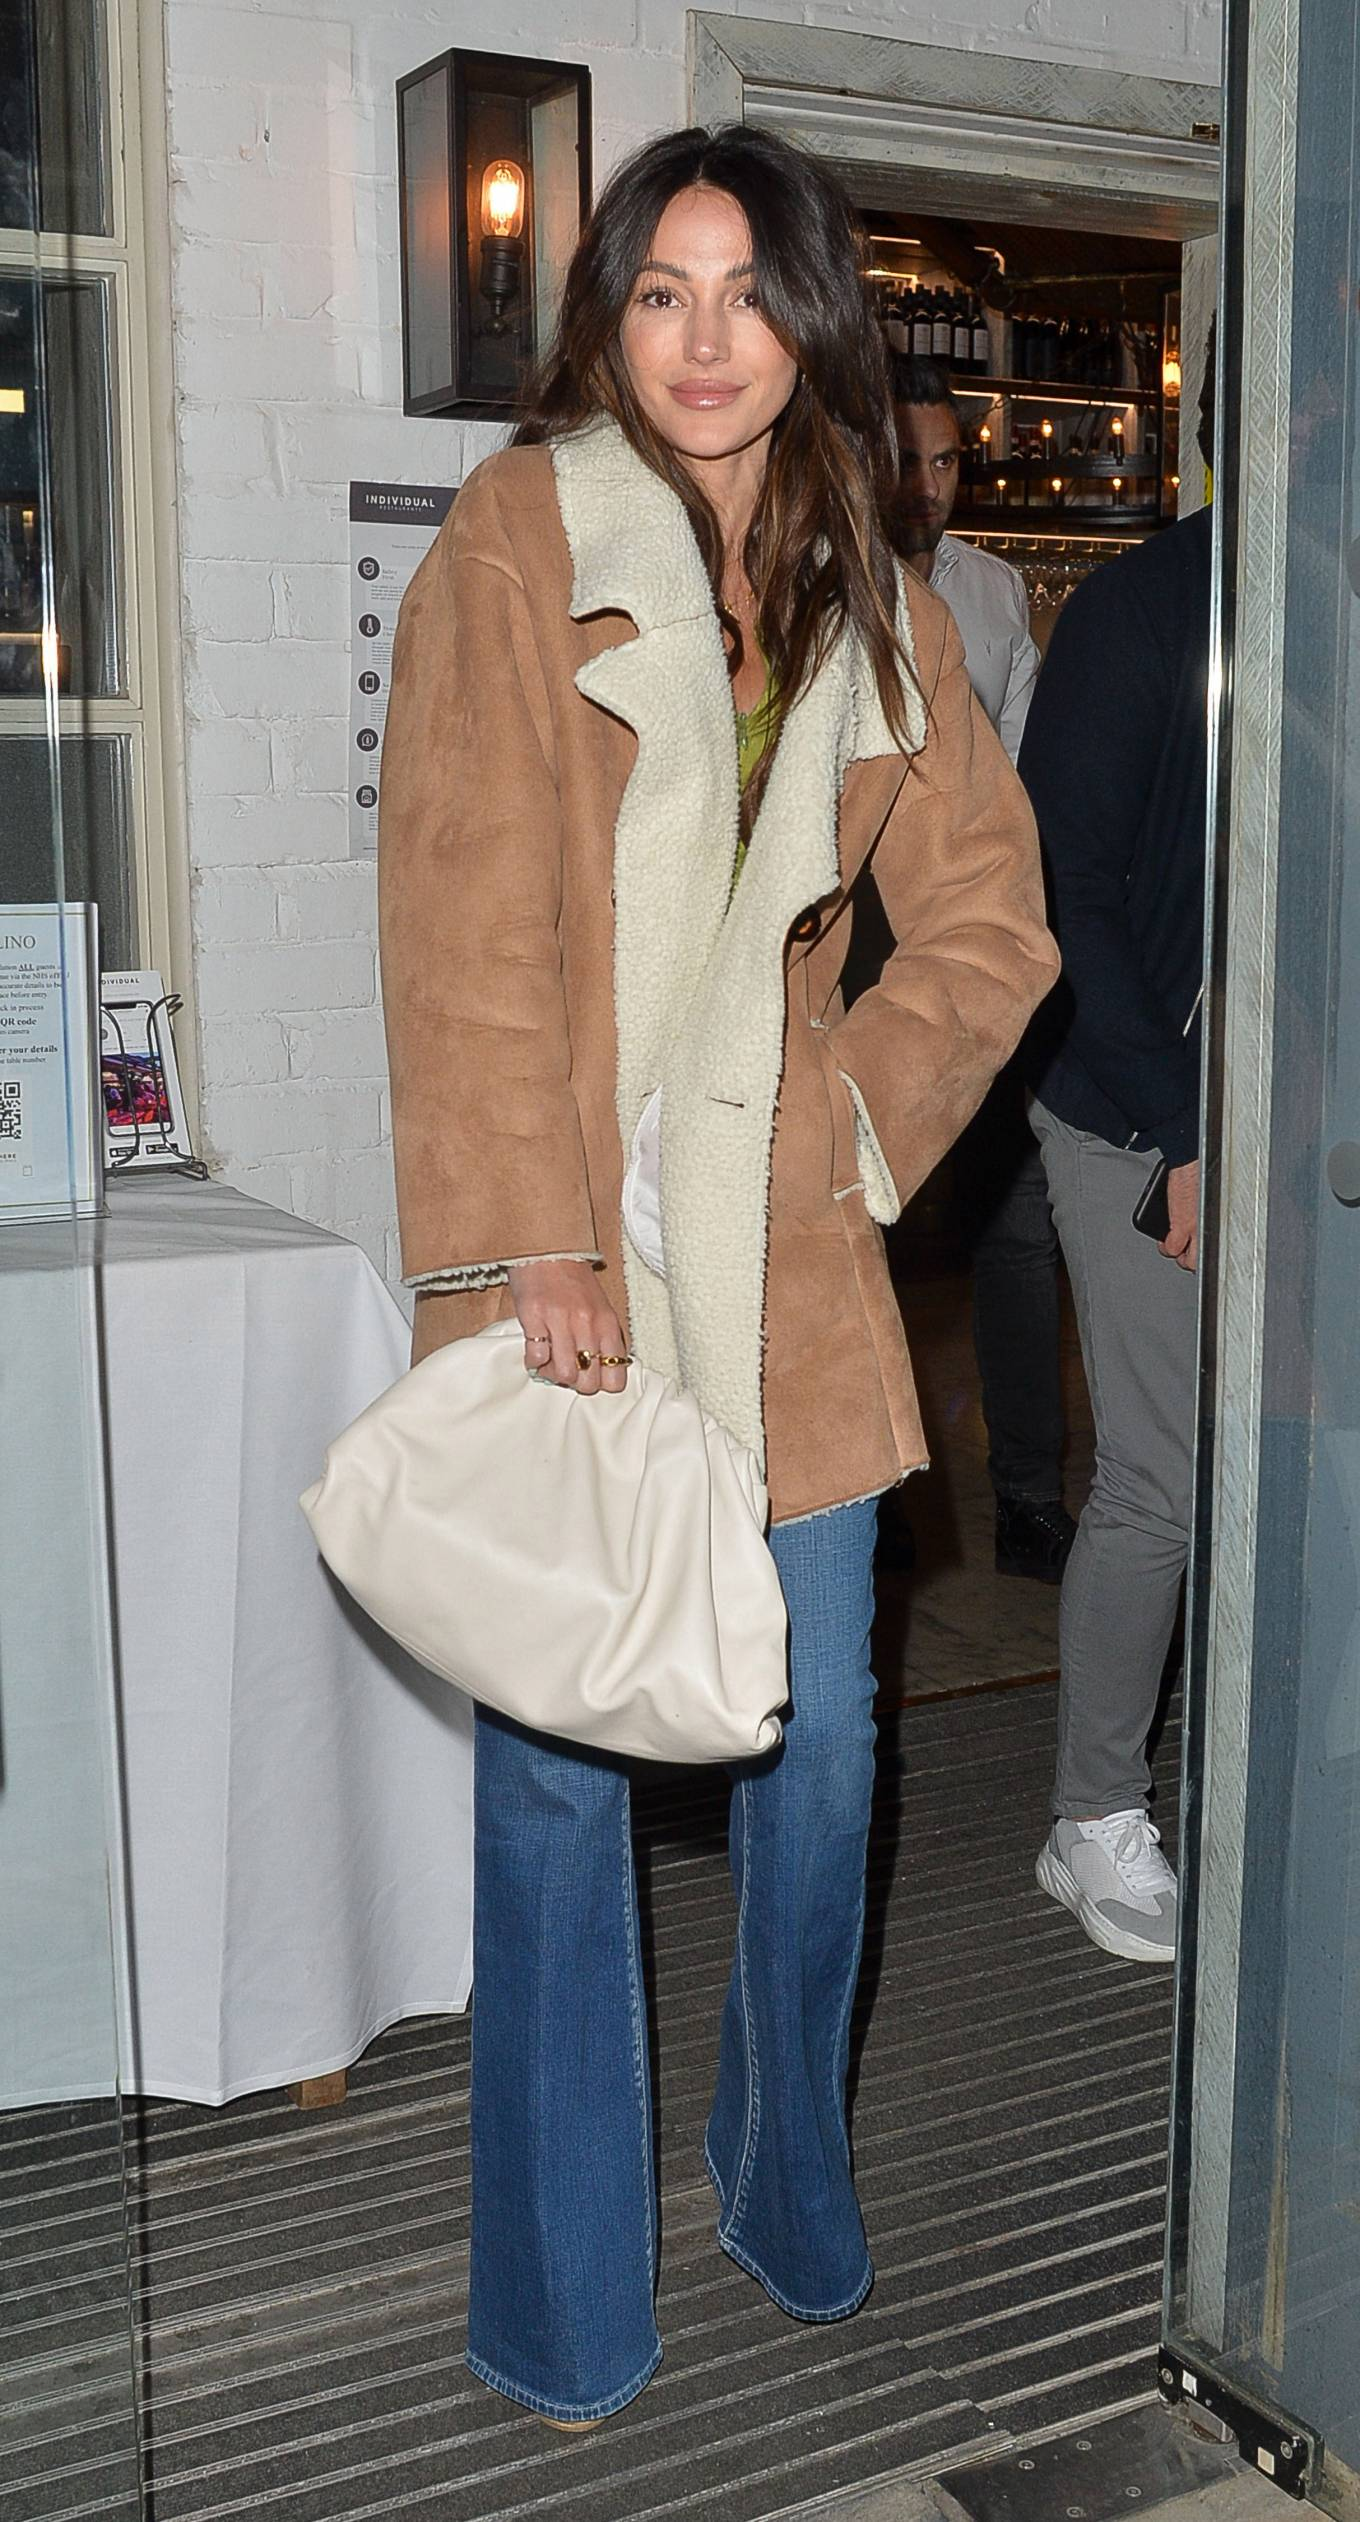 Michelle Keegan - Night out in Cheshire